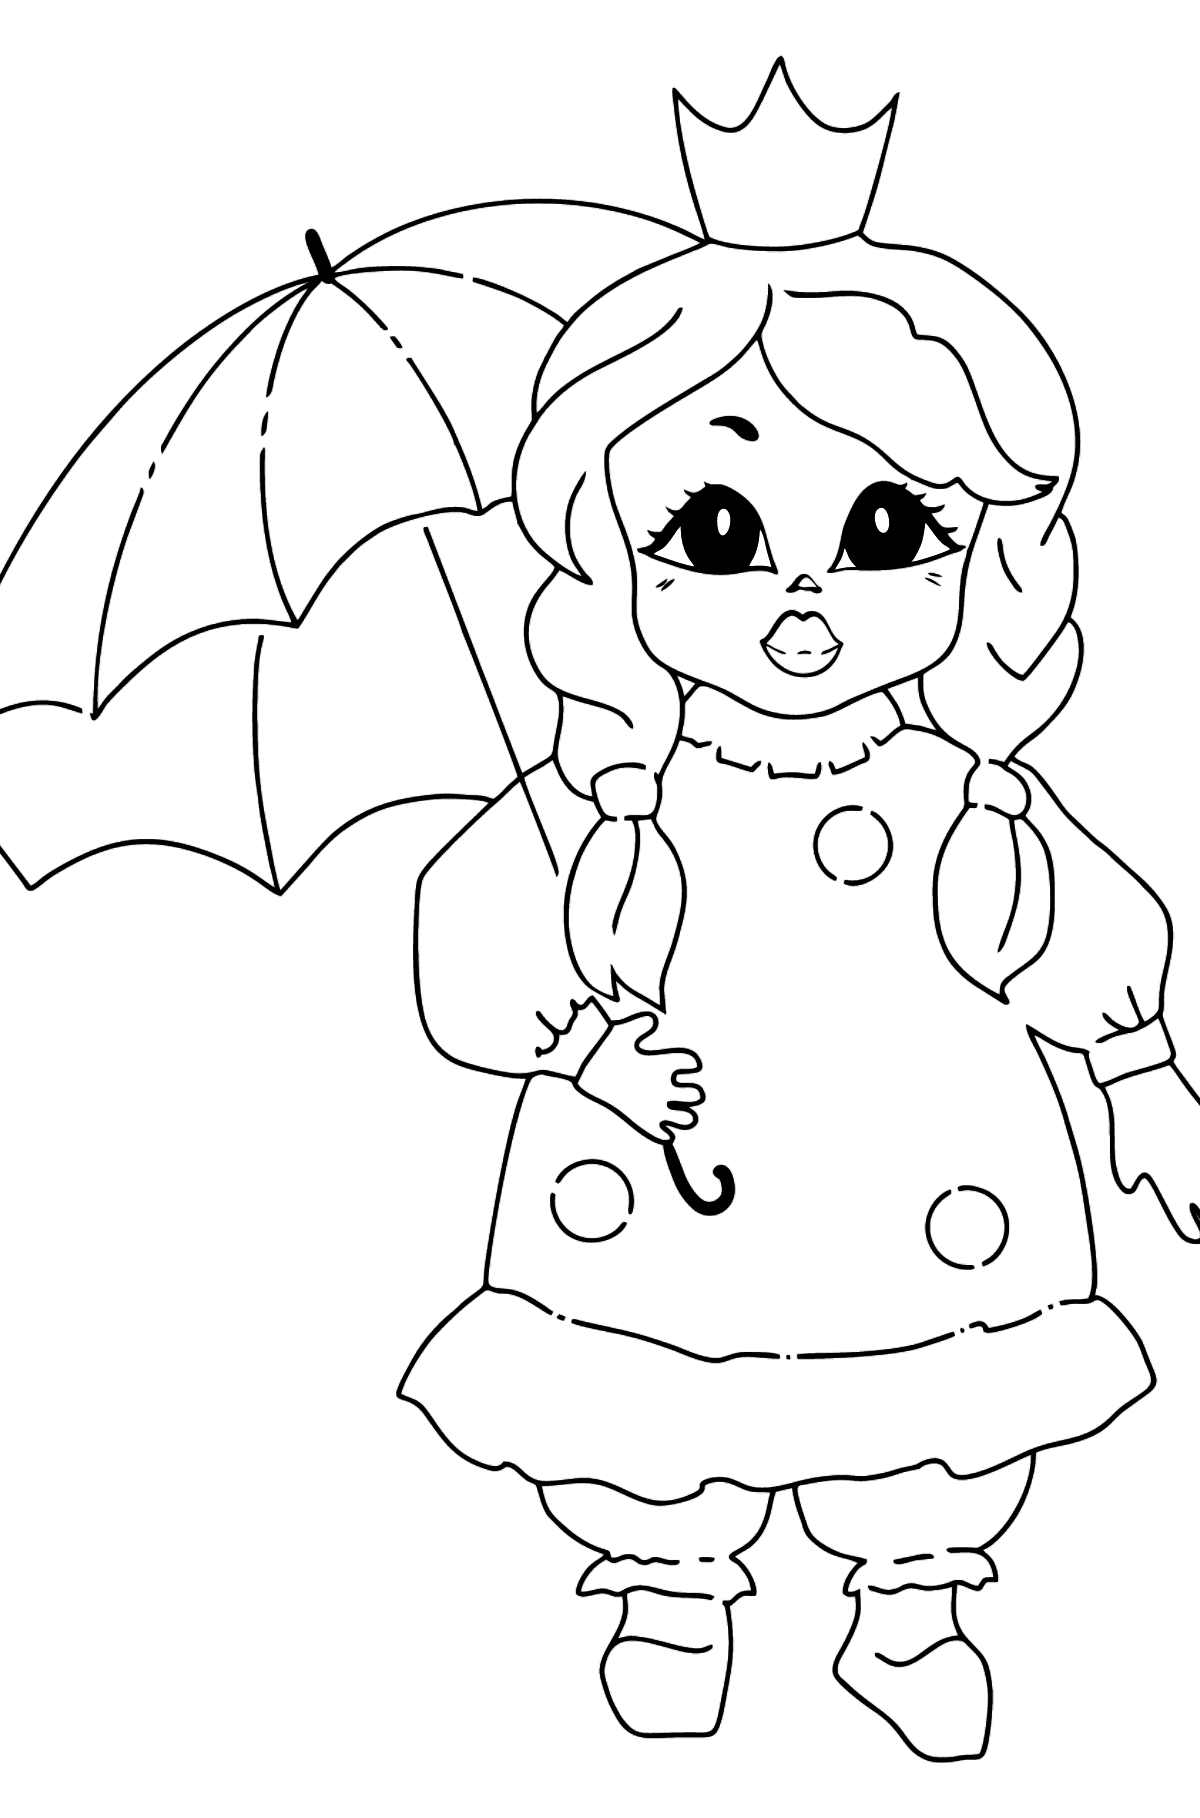 Coloring Picture - A Princess with an Umbrella - Coloring Pages for Kids